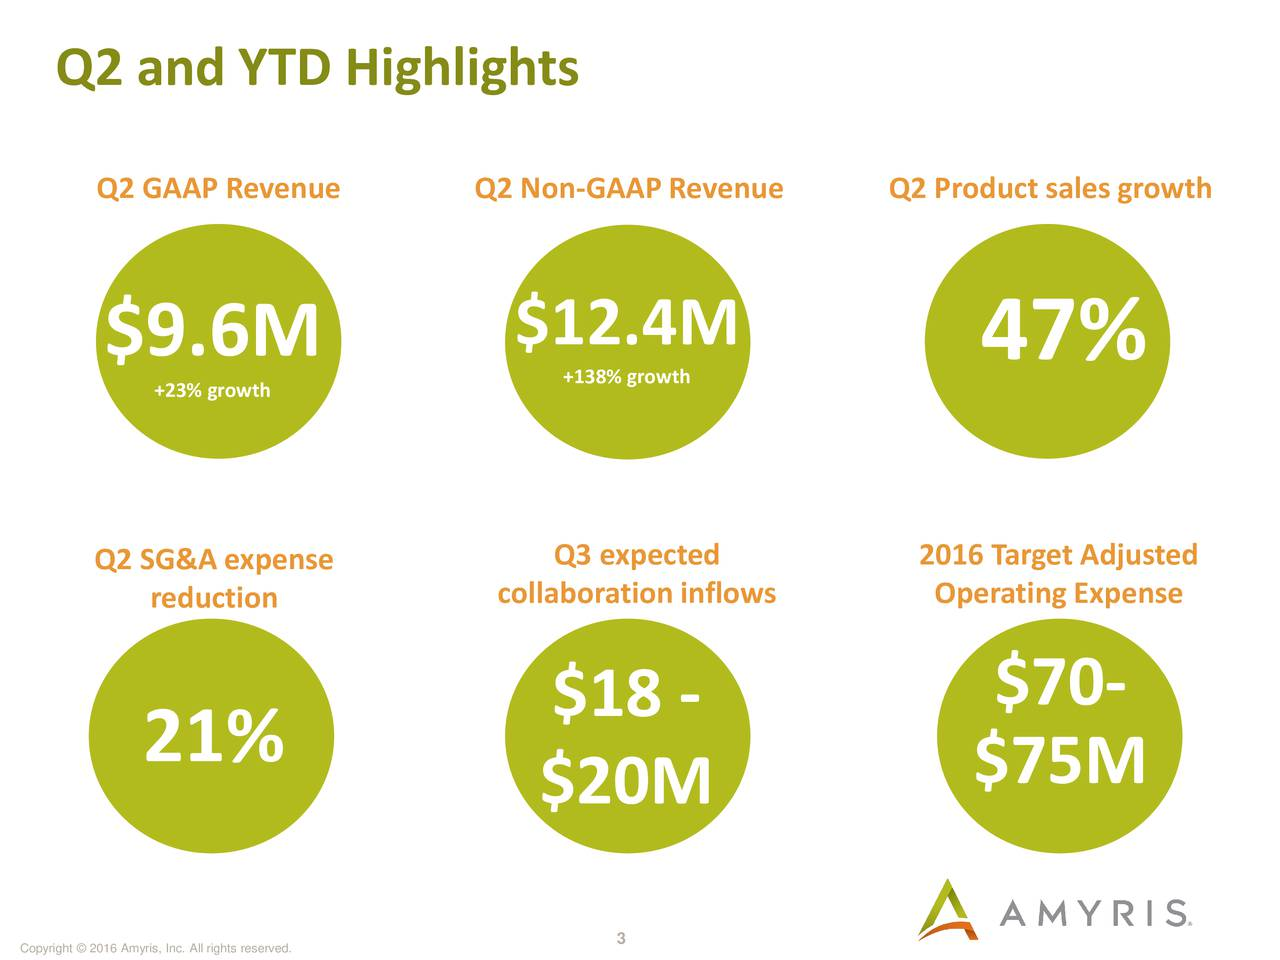 178/187/30 Q2 GAAP Revenue Q2 Non-GAAP Revenue Q2 Product sales growth 145/145/149 $12.4M $9.6M +138% growth 47% +23% growth 185/52/75 Q2 SG&A expense collaboration inflows2Operating Expenseed 0/90/132 reduction $18 - $70- 105/109/17 21% $20M $75M 117/76/12